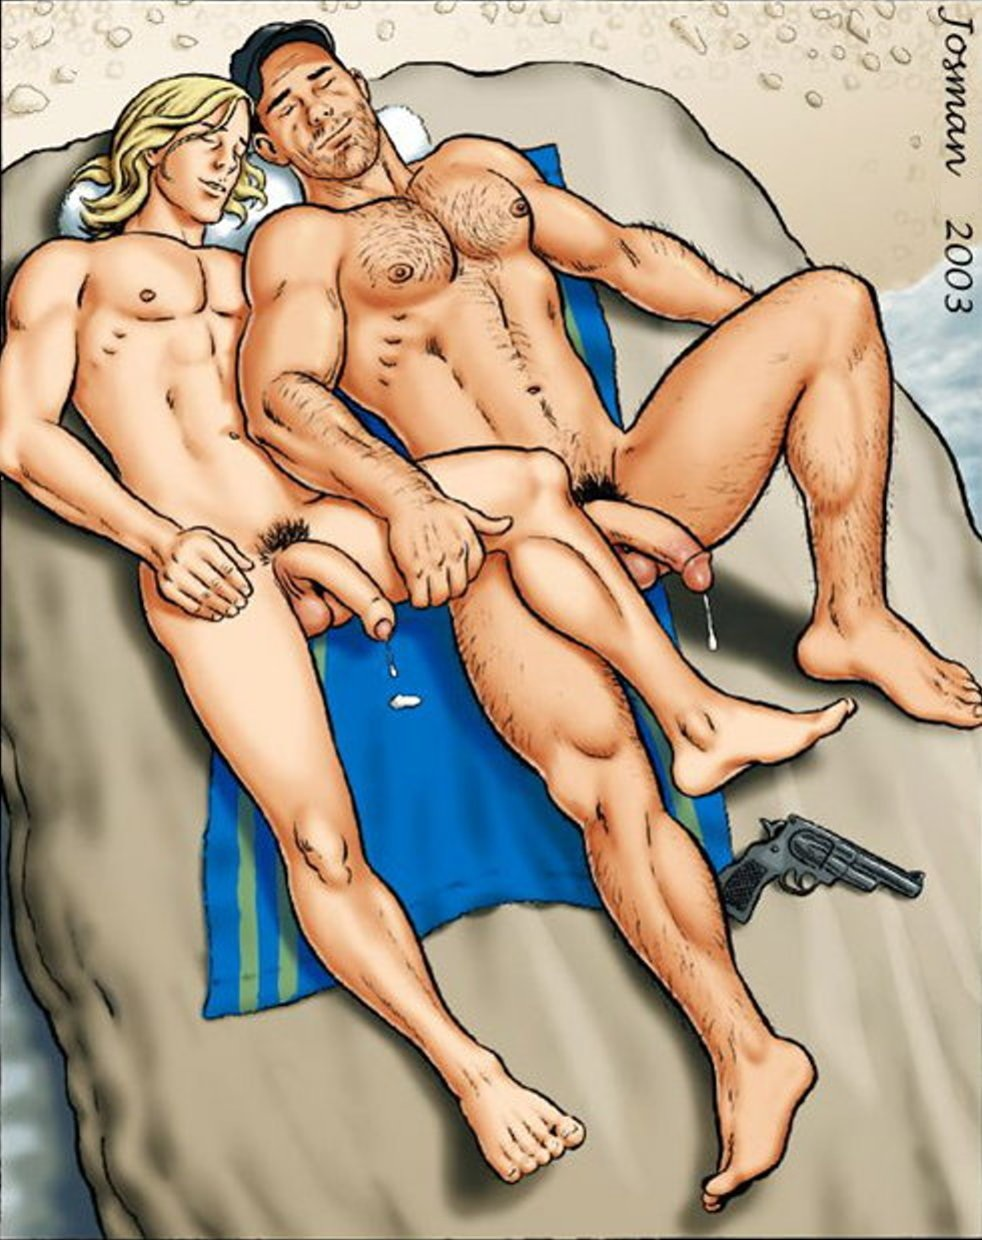 Sex cartoon very sexy sex photos